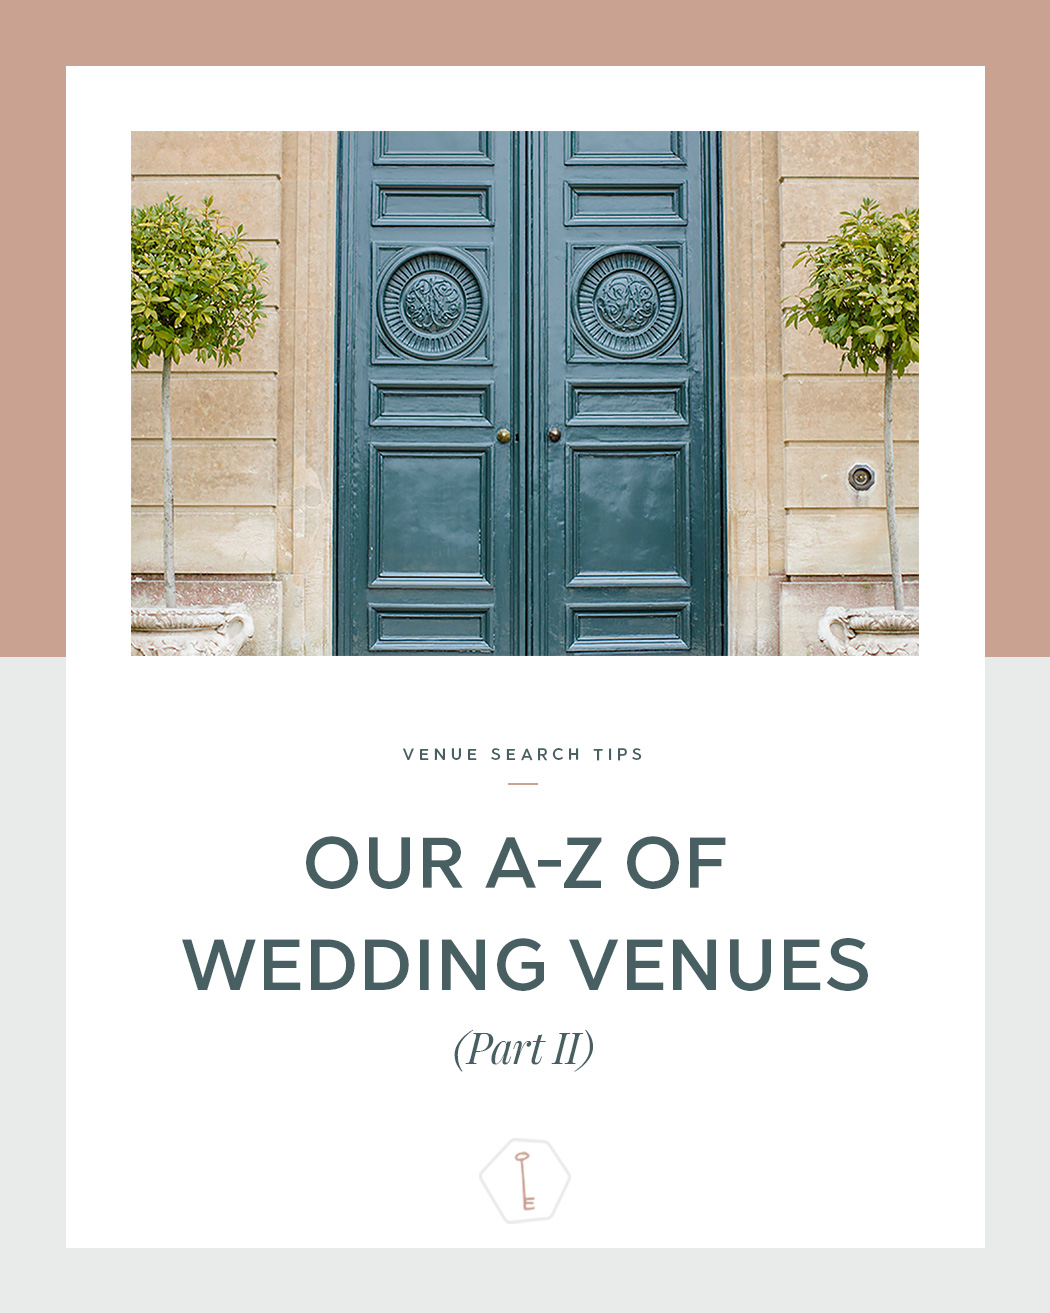 a-z-of-wedding-venues-wedding-planning-tips-poster-2